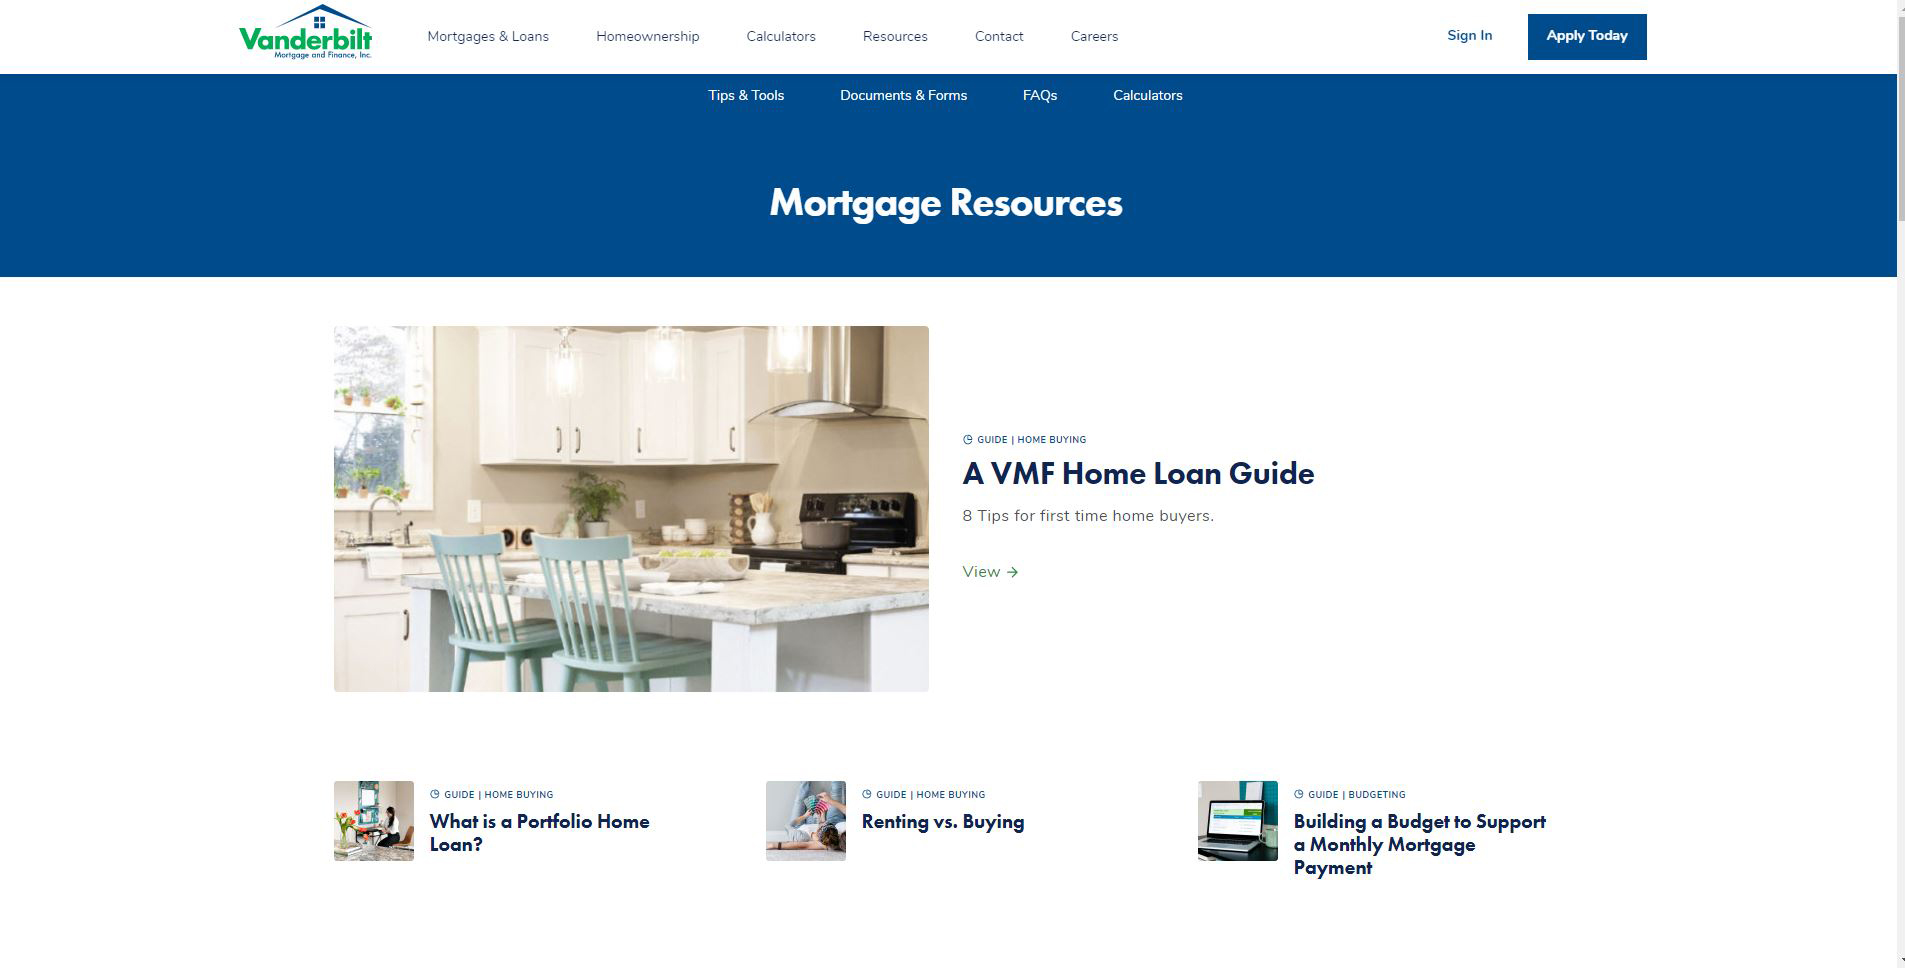 Mortgage resources help educate customers and bring clarity to the mortgage process.